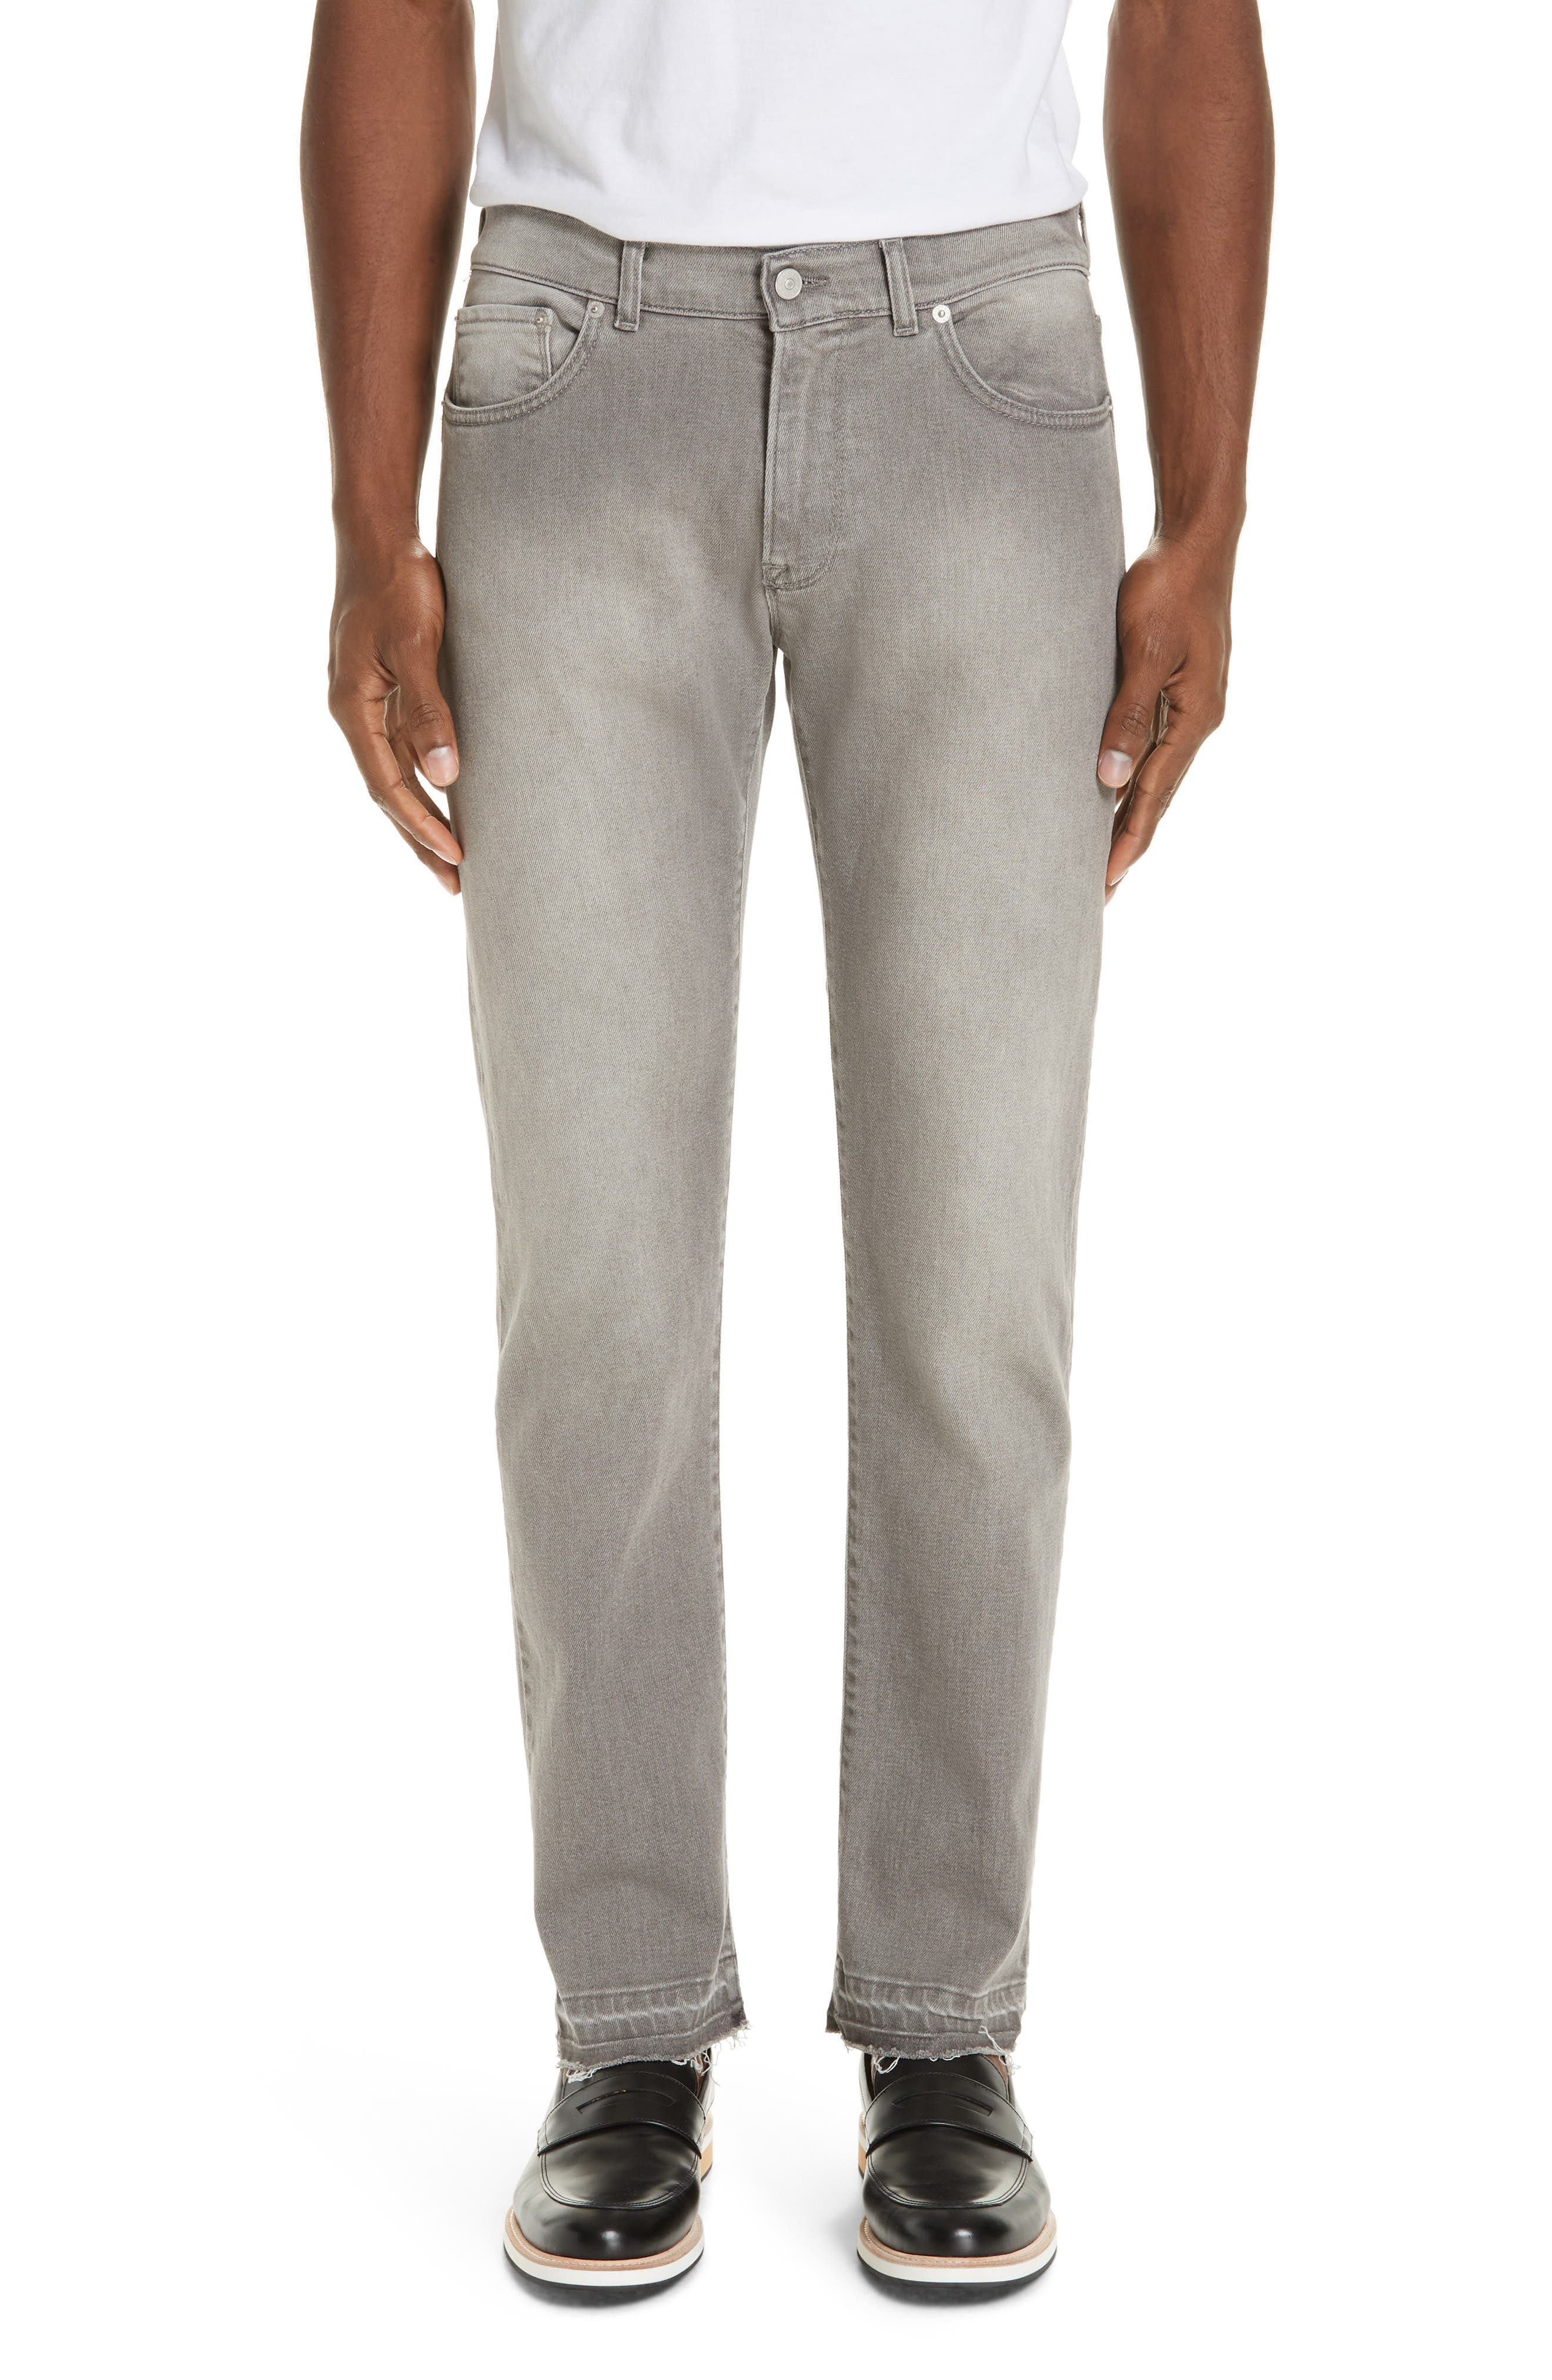 EIDOS Raw Edge Jeans in Grey